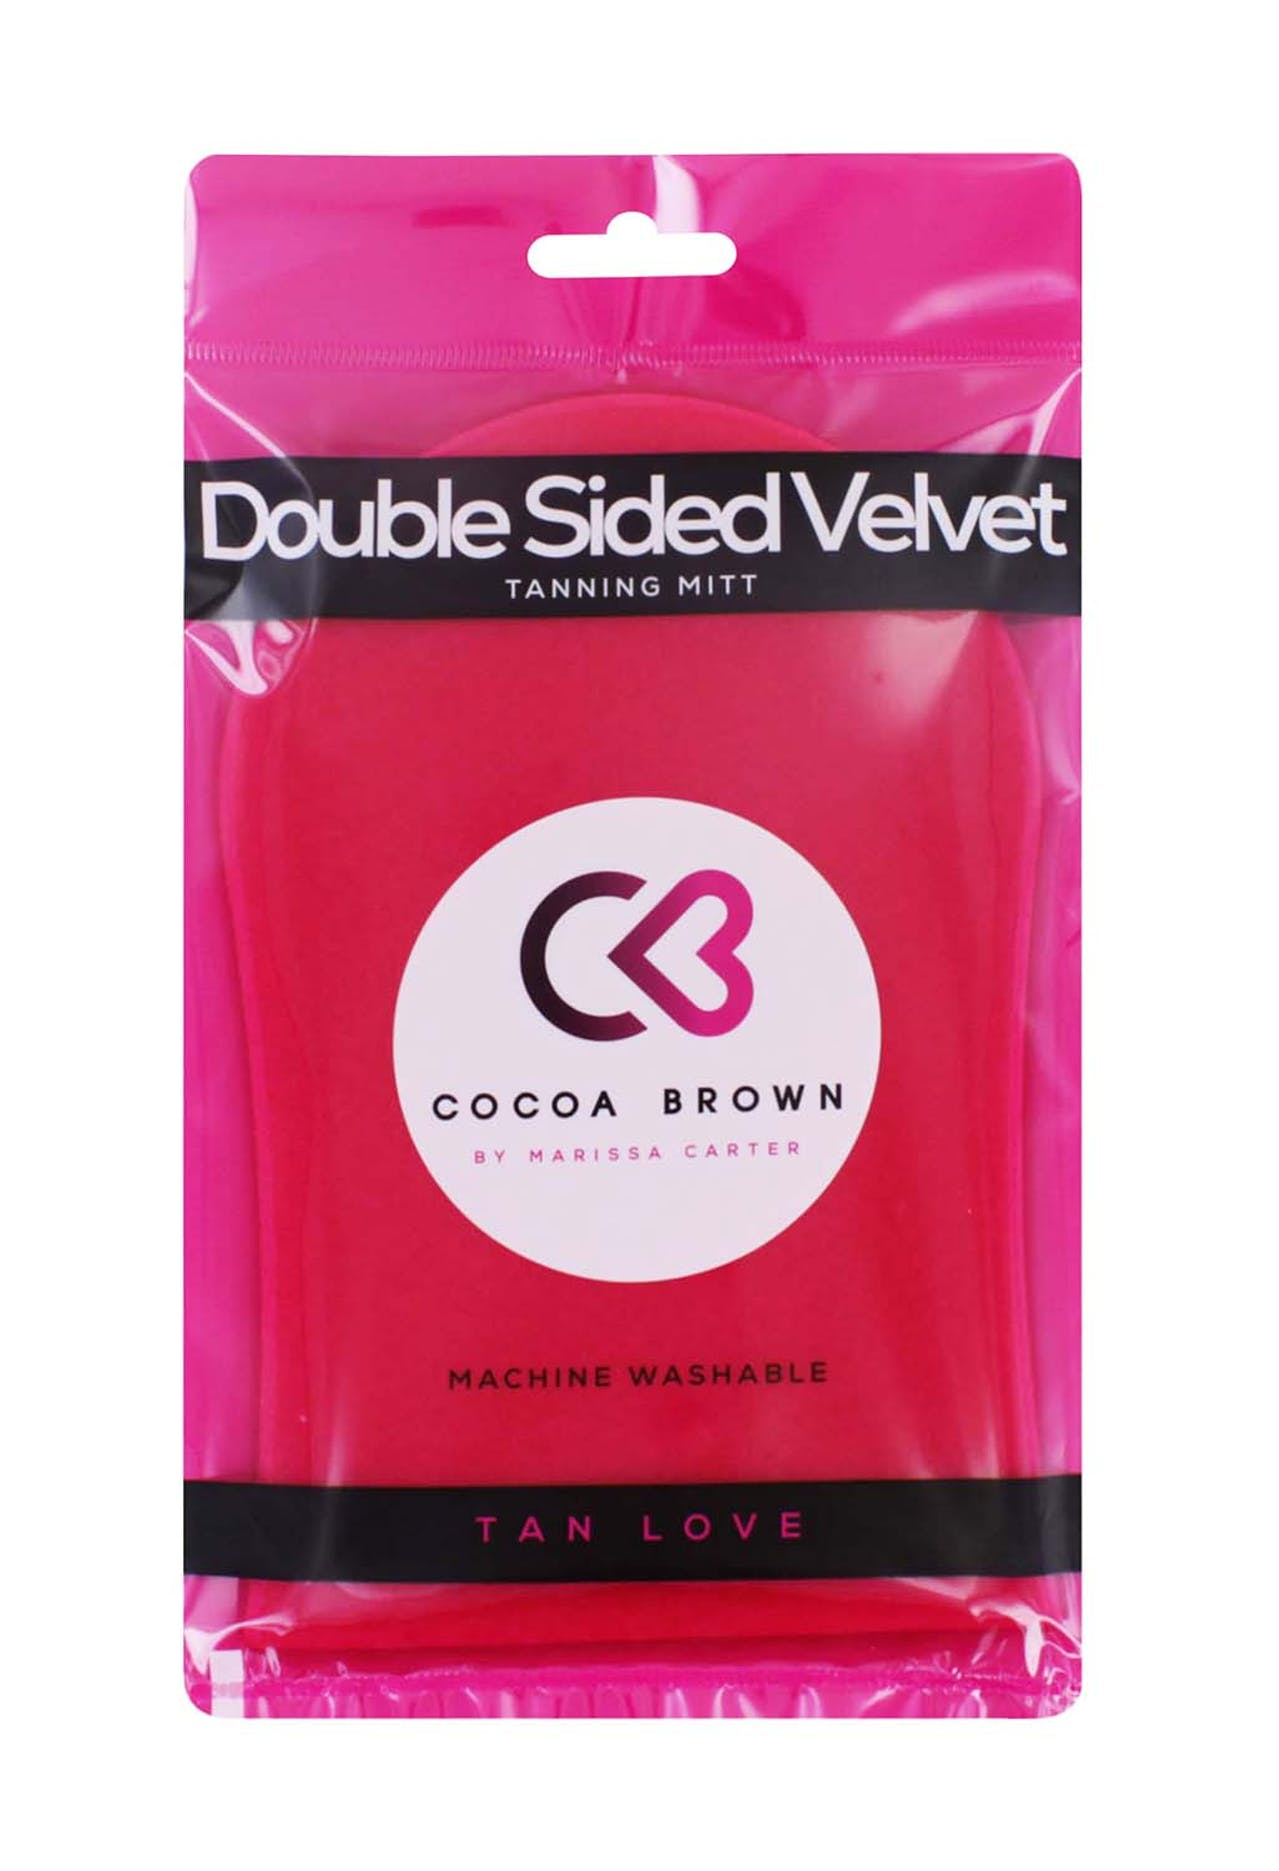 COCOA BROWN DOUBLE SIDED PINK VELVET TANNING MITT